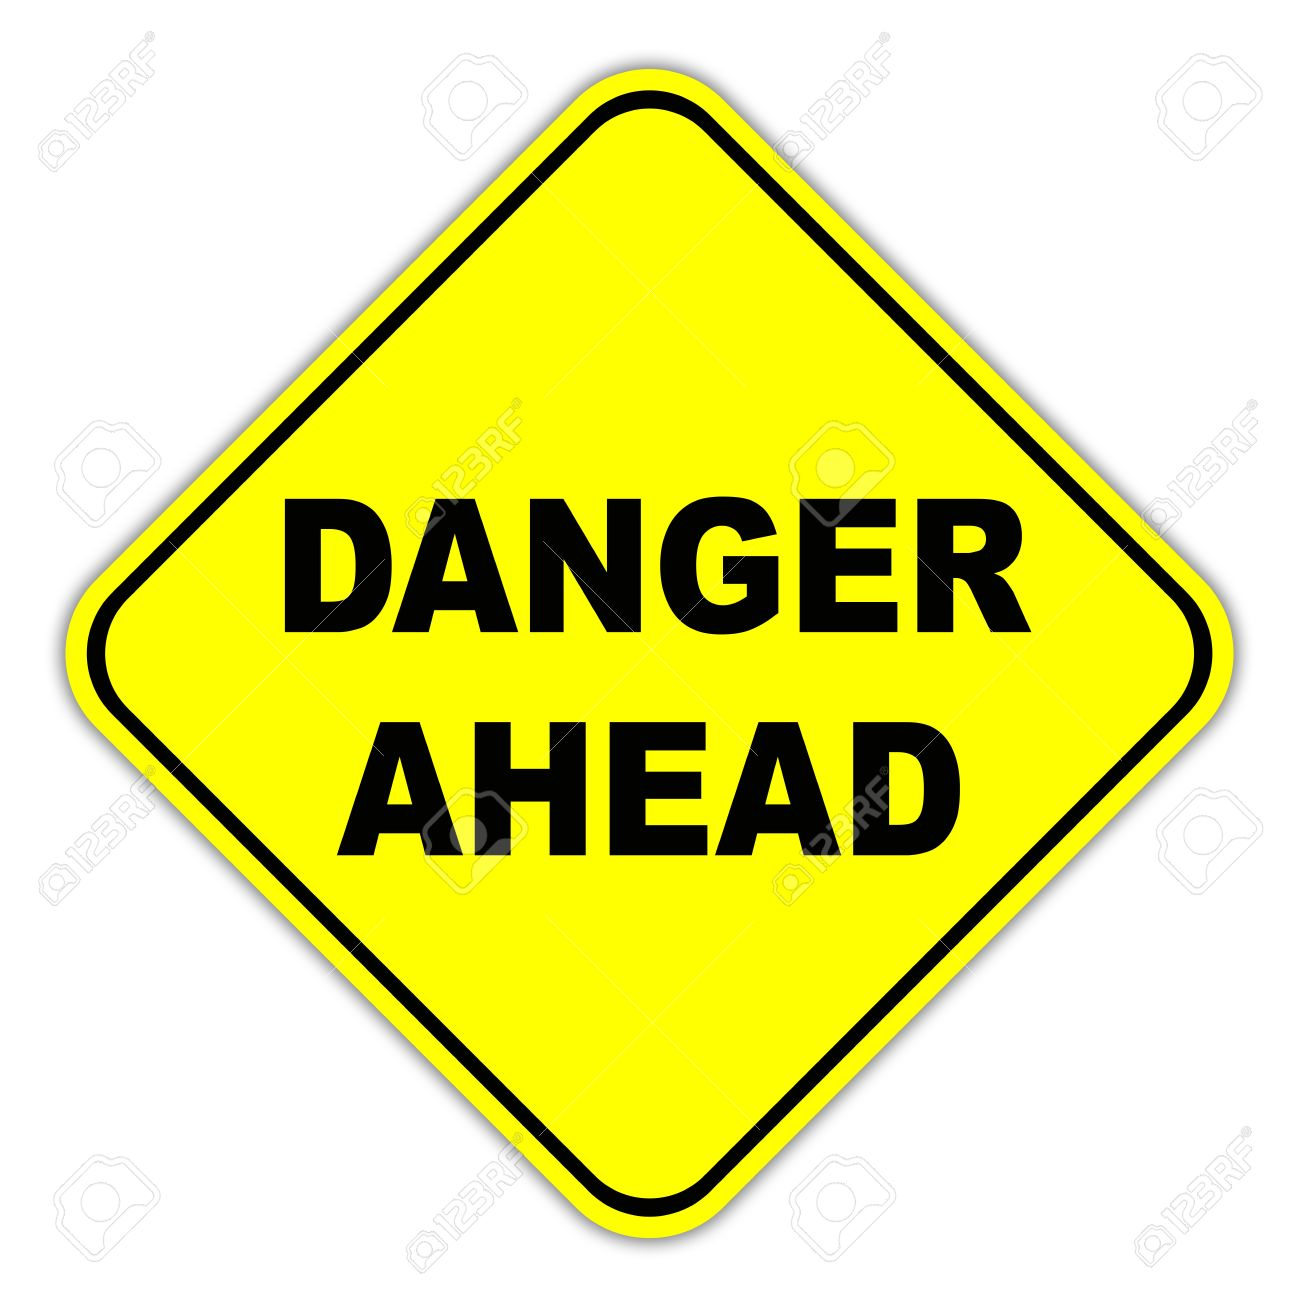 Yellow Danger Ahead Road Sign Stock Photo, Picture And Royalty.